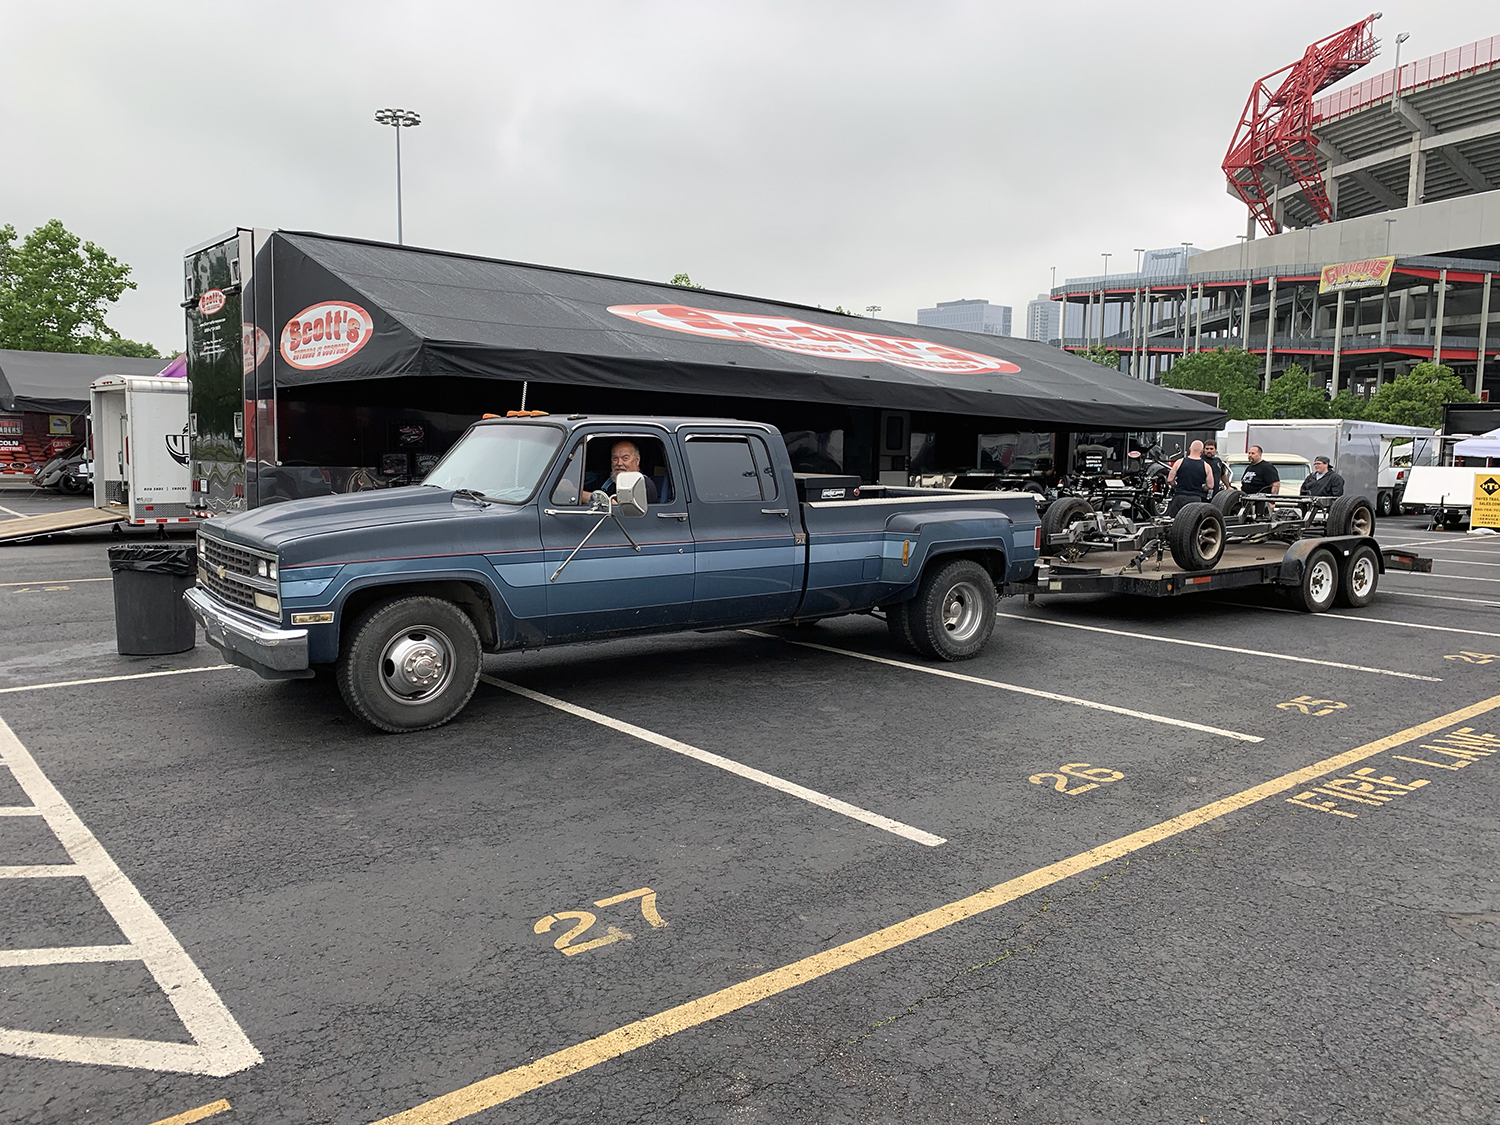 scotts-hotrods-good-guys-nashville-2019-28